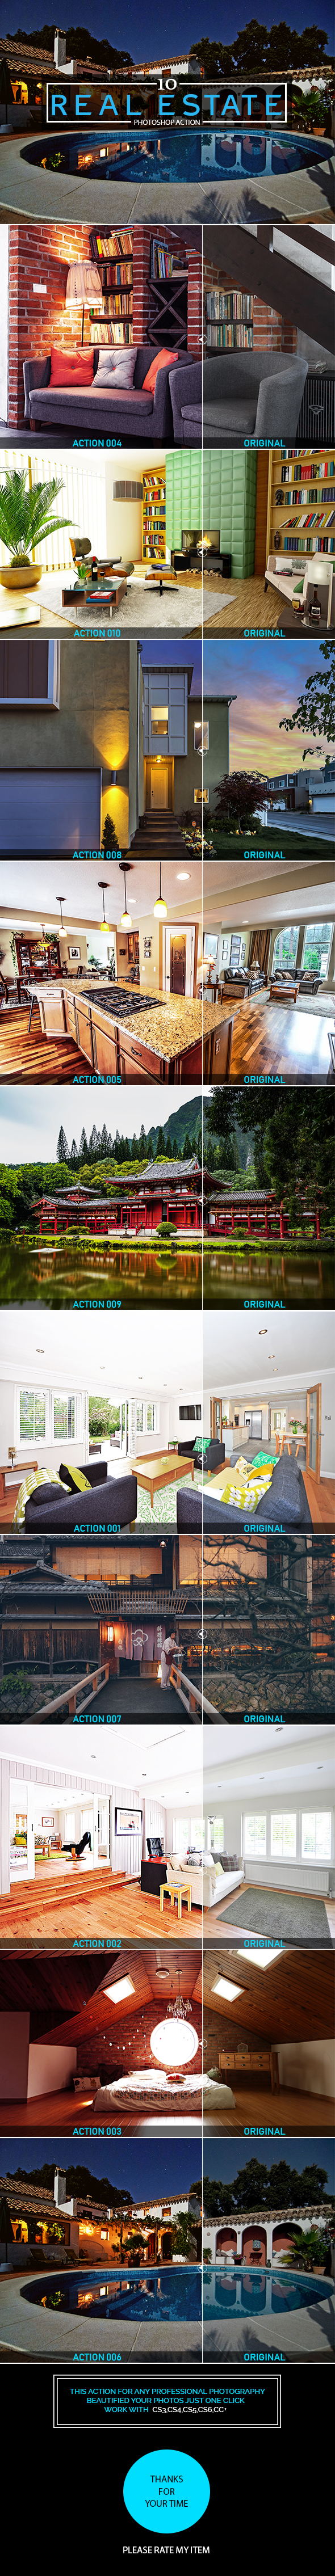 10 Real Estate Photoshop Action - Photo Effects Actions